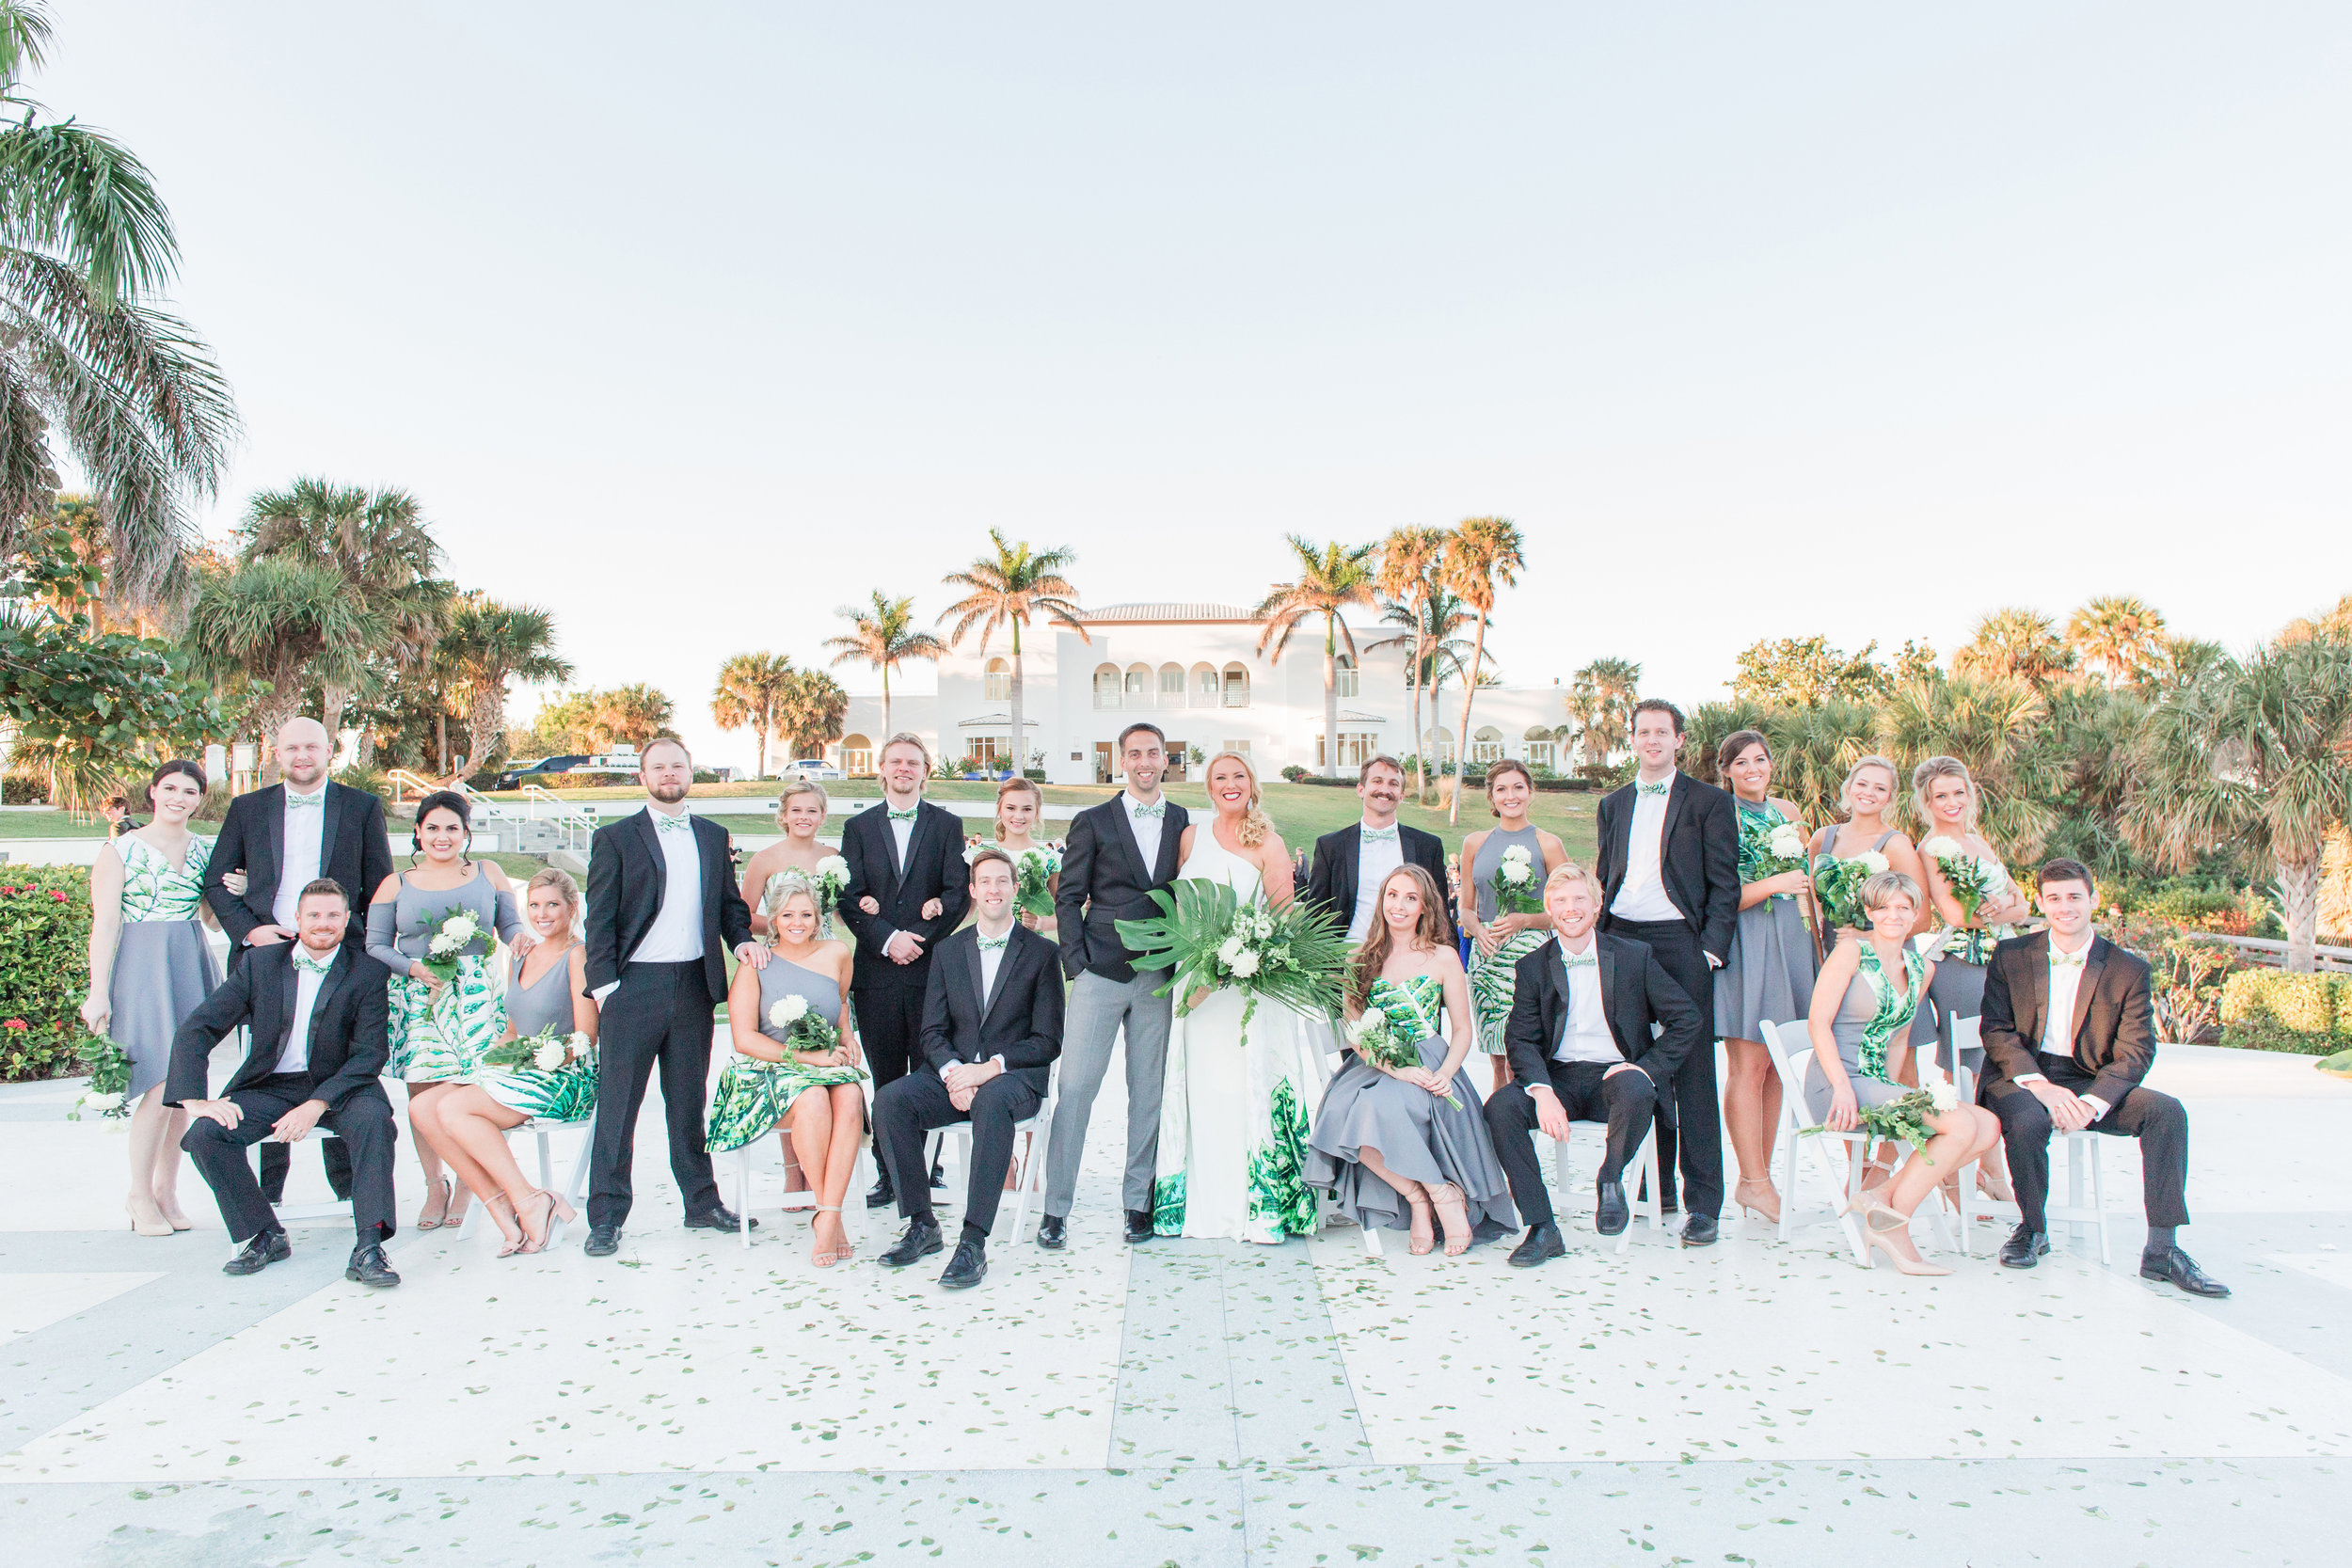 Our huge family oriented bridal party was so much fun to have by our sides for the whole day!